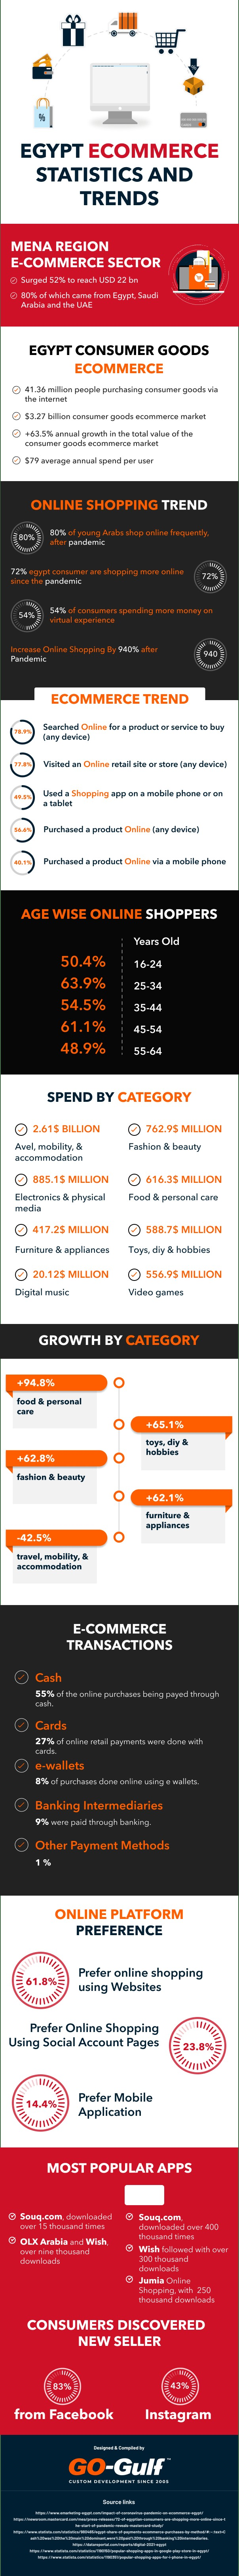 Egypt Ecommerce Statistics and Trends [infographics]